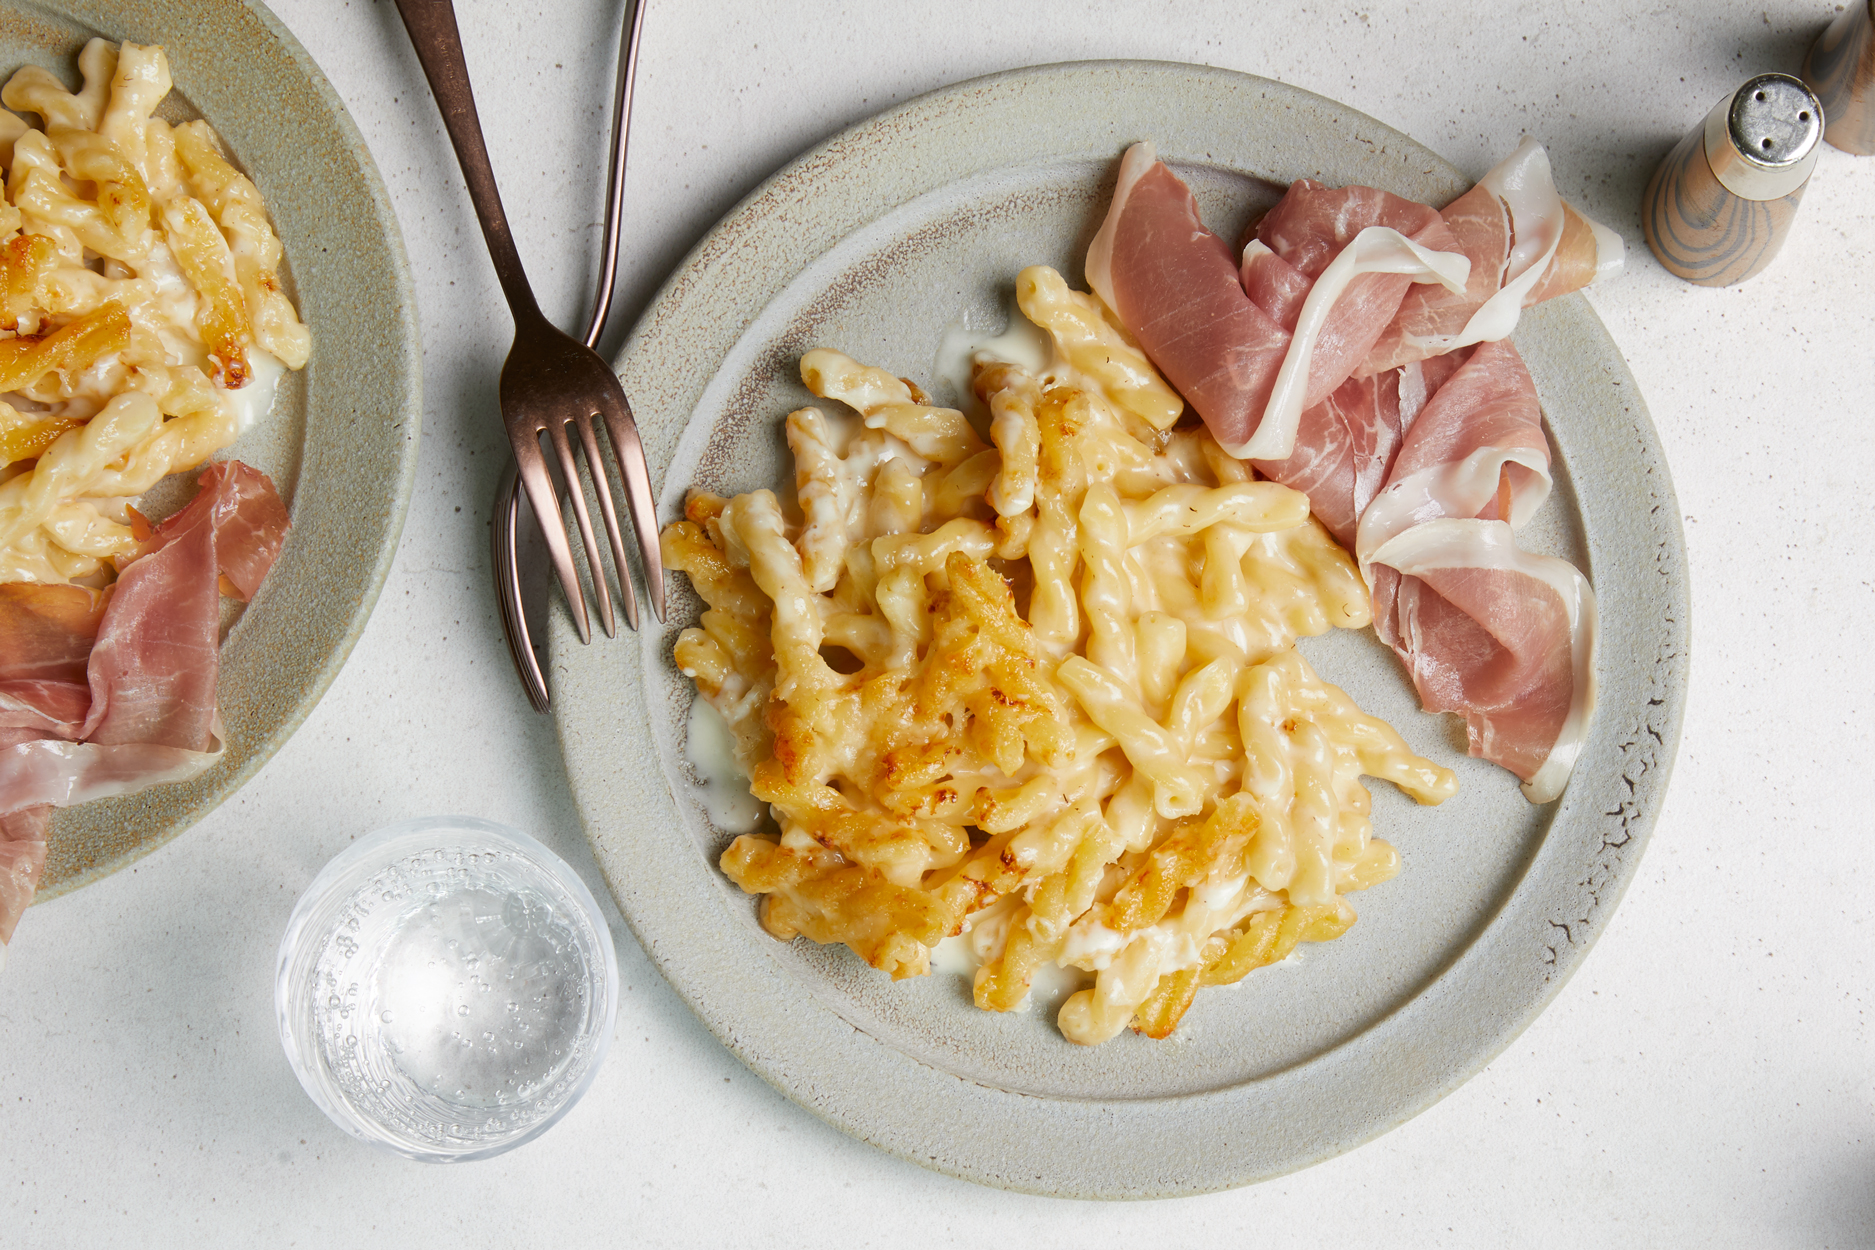 Creamy Baked Pasta with Gruyere and Prosciutto Recipe